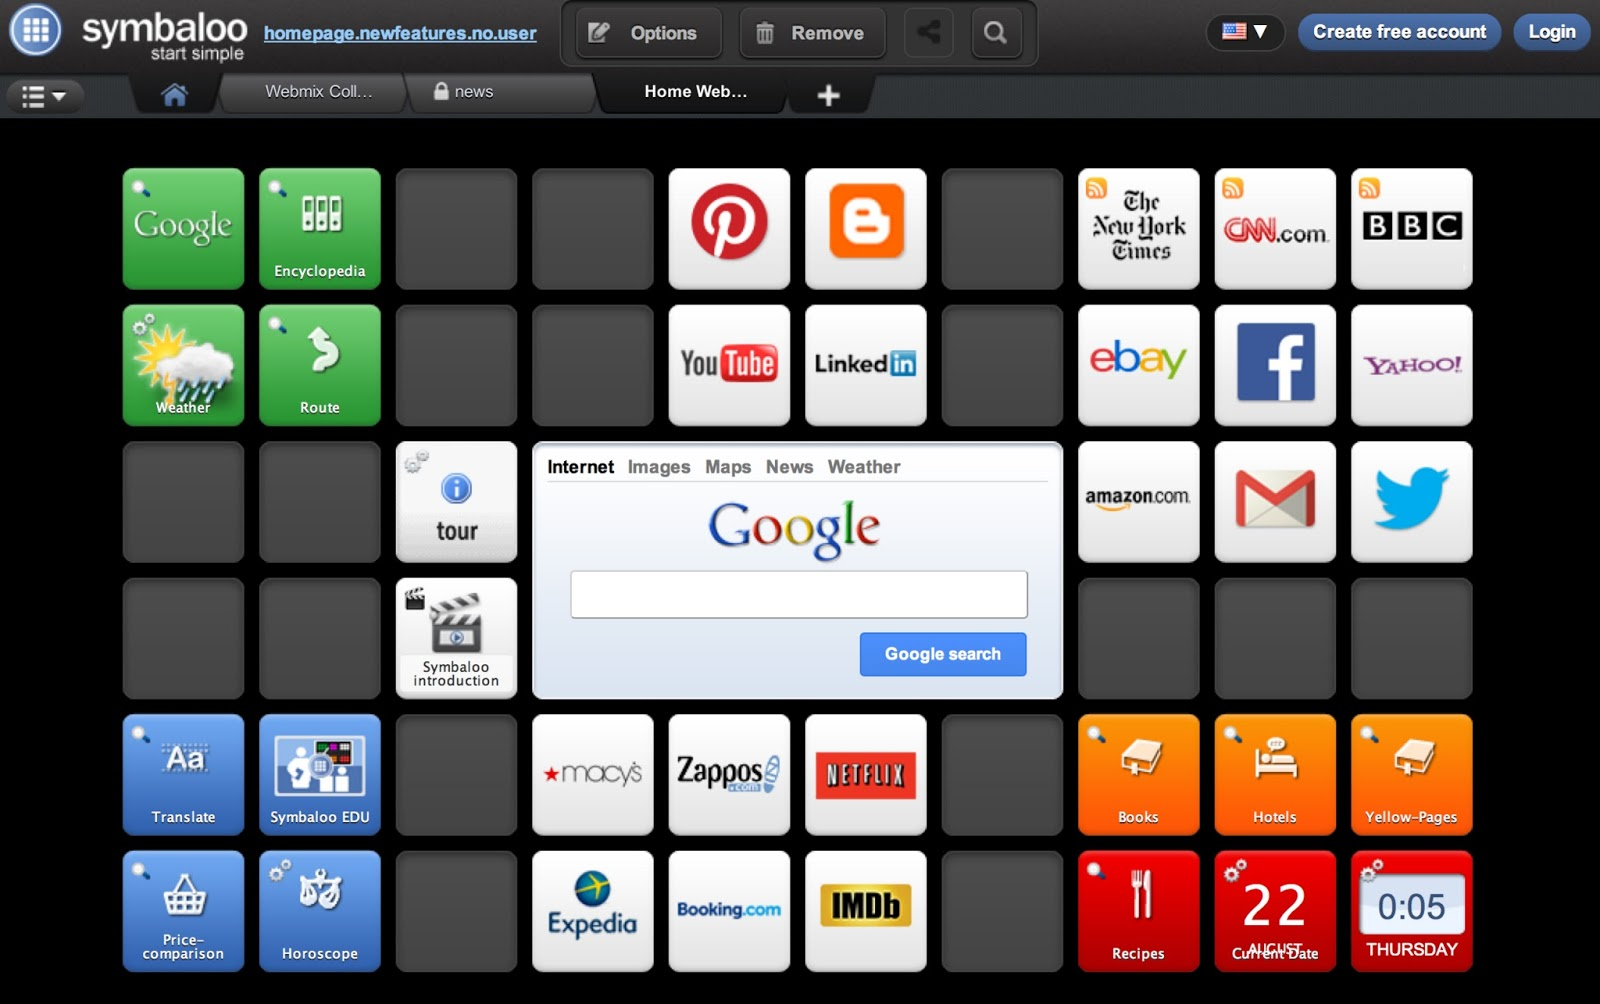 symbaloo organize your favorite websites visually in one place